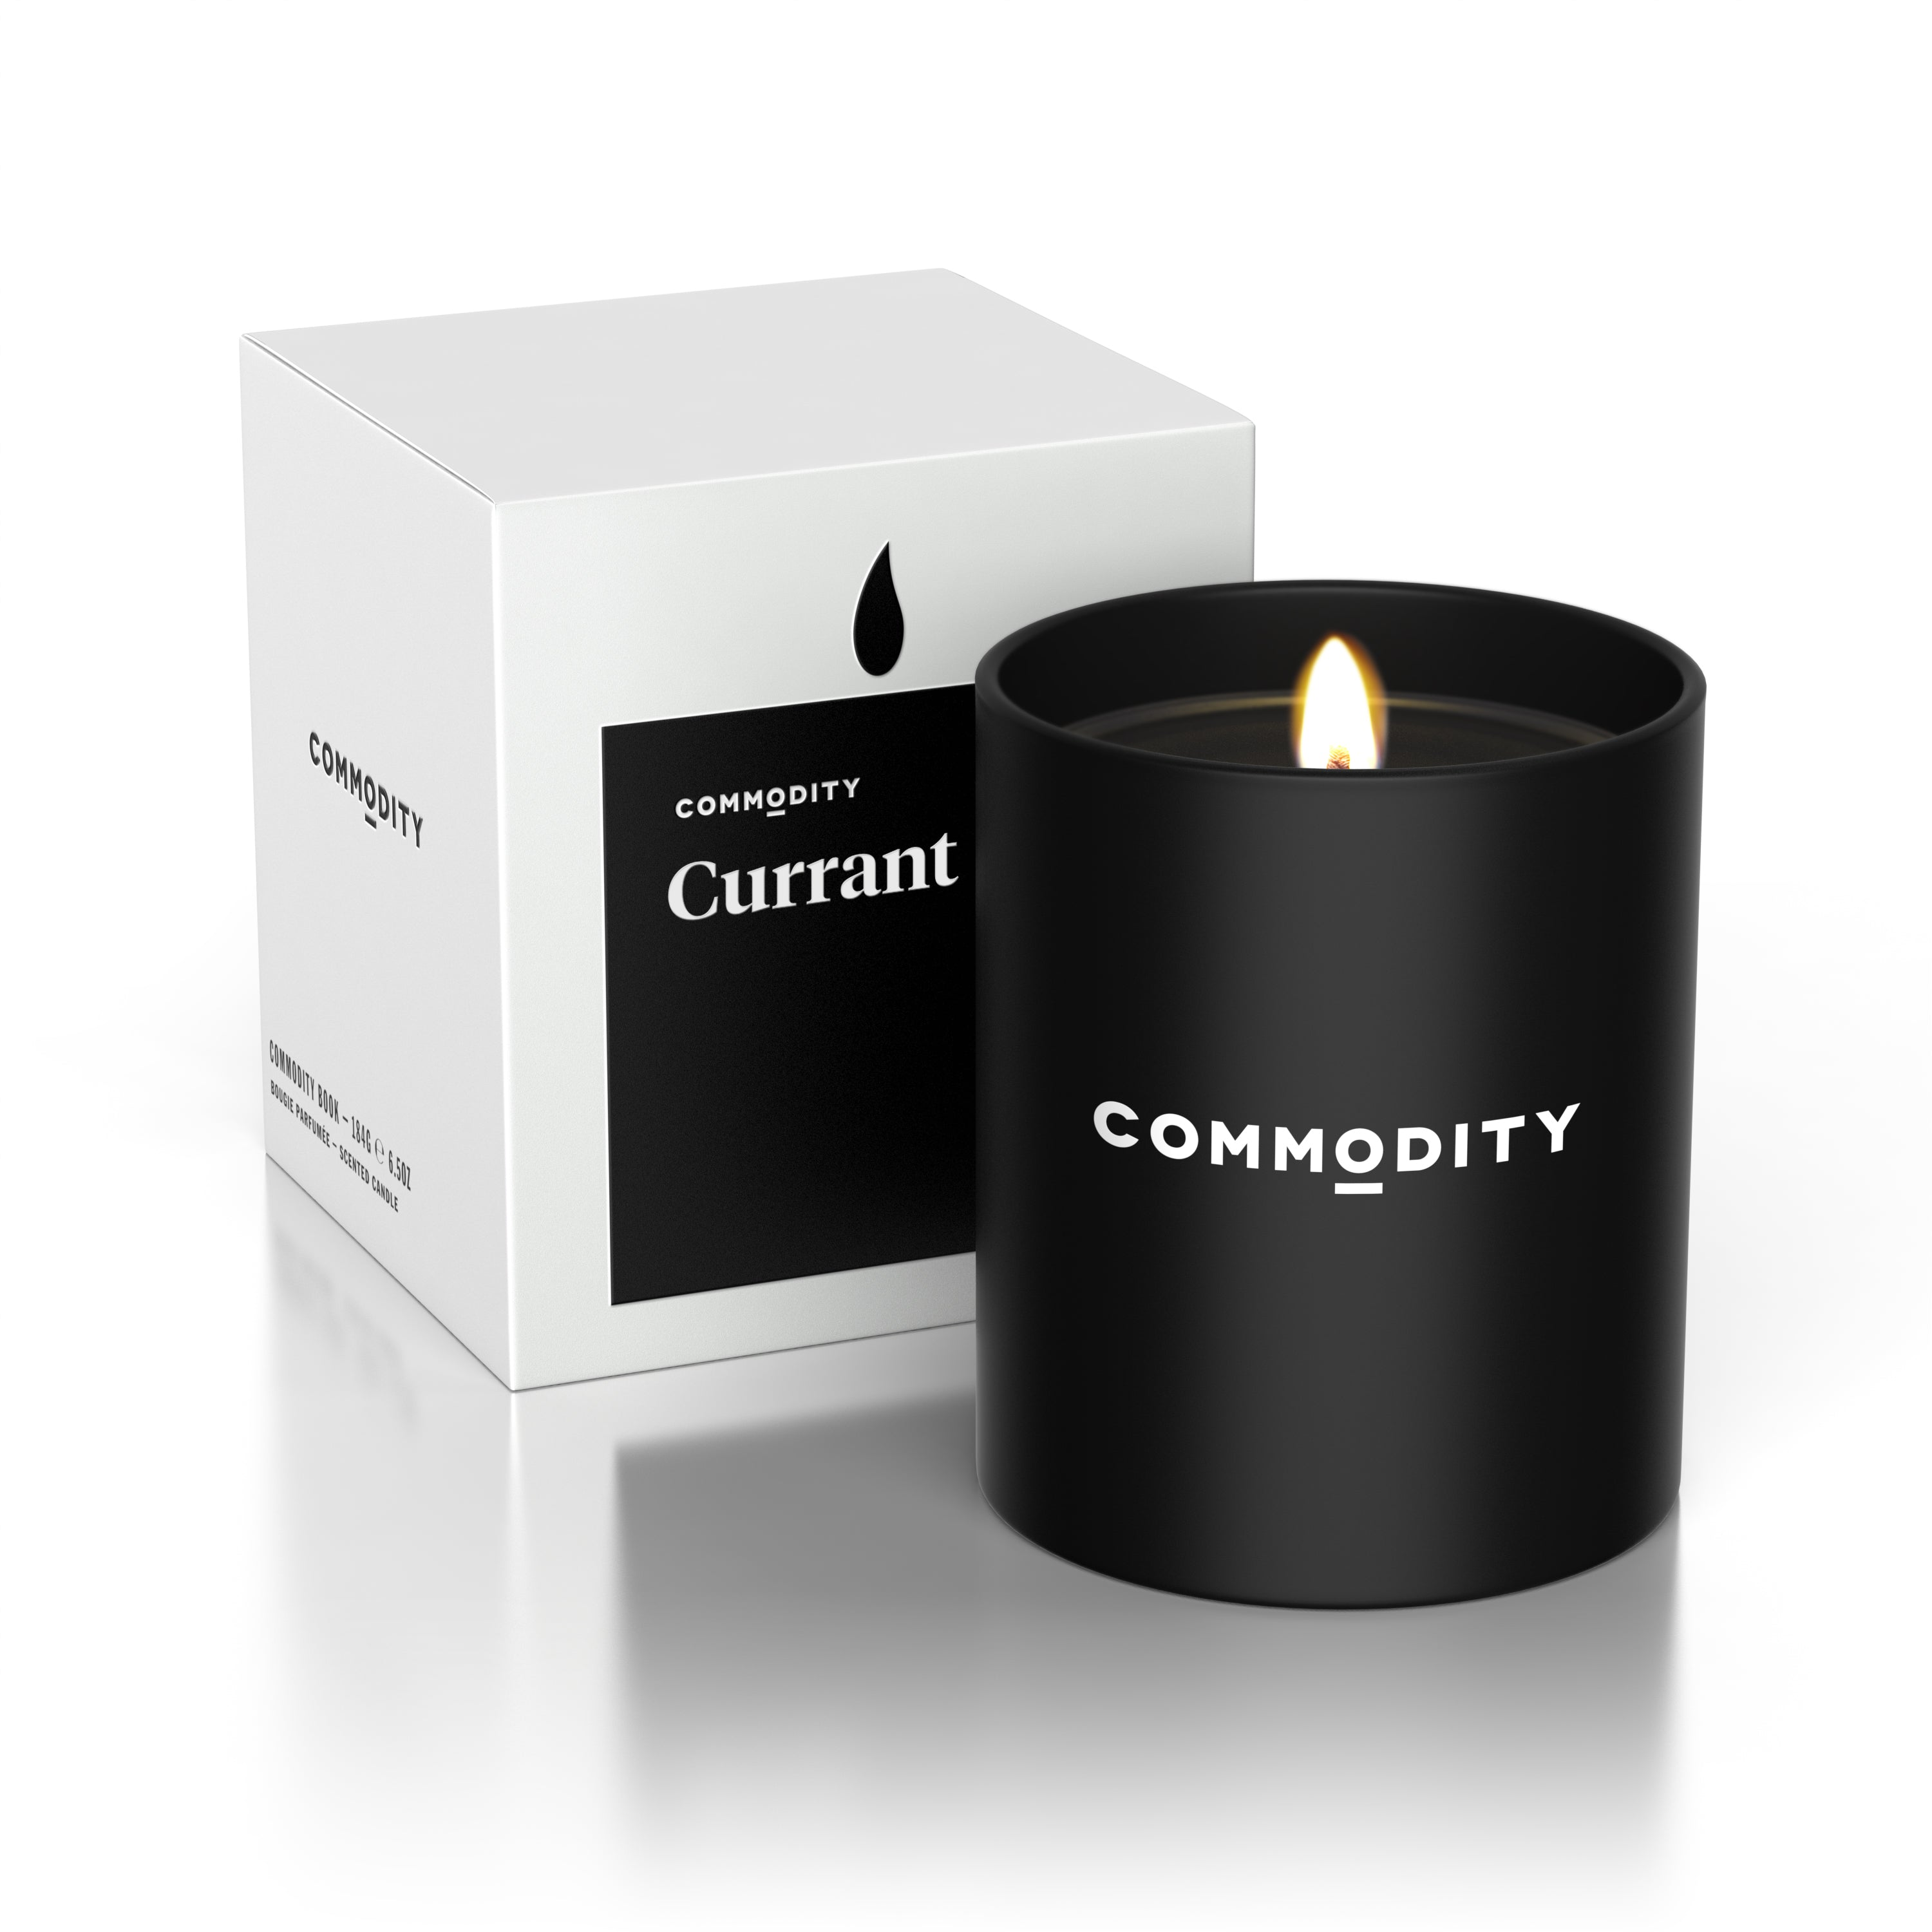 Commodity Currant Candle